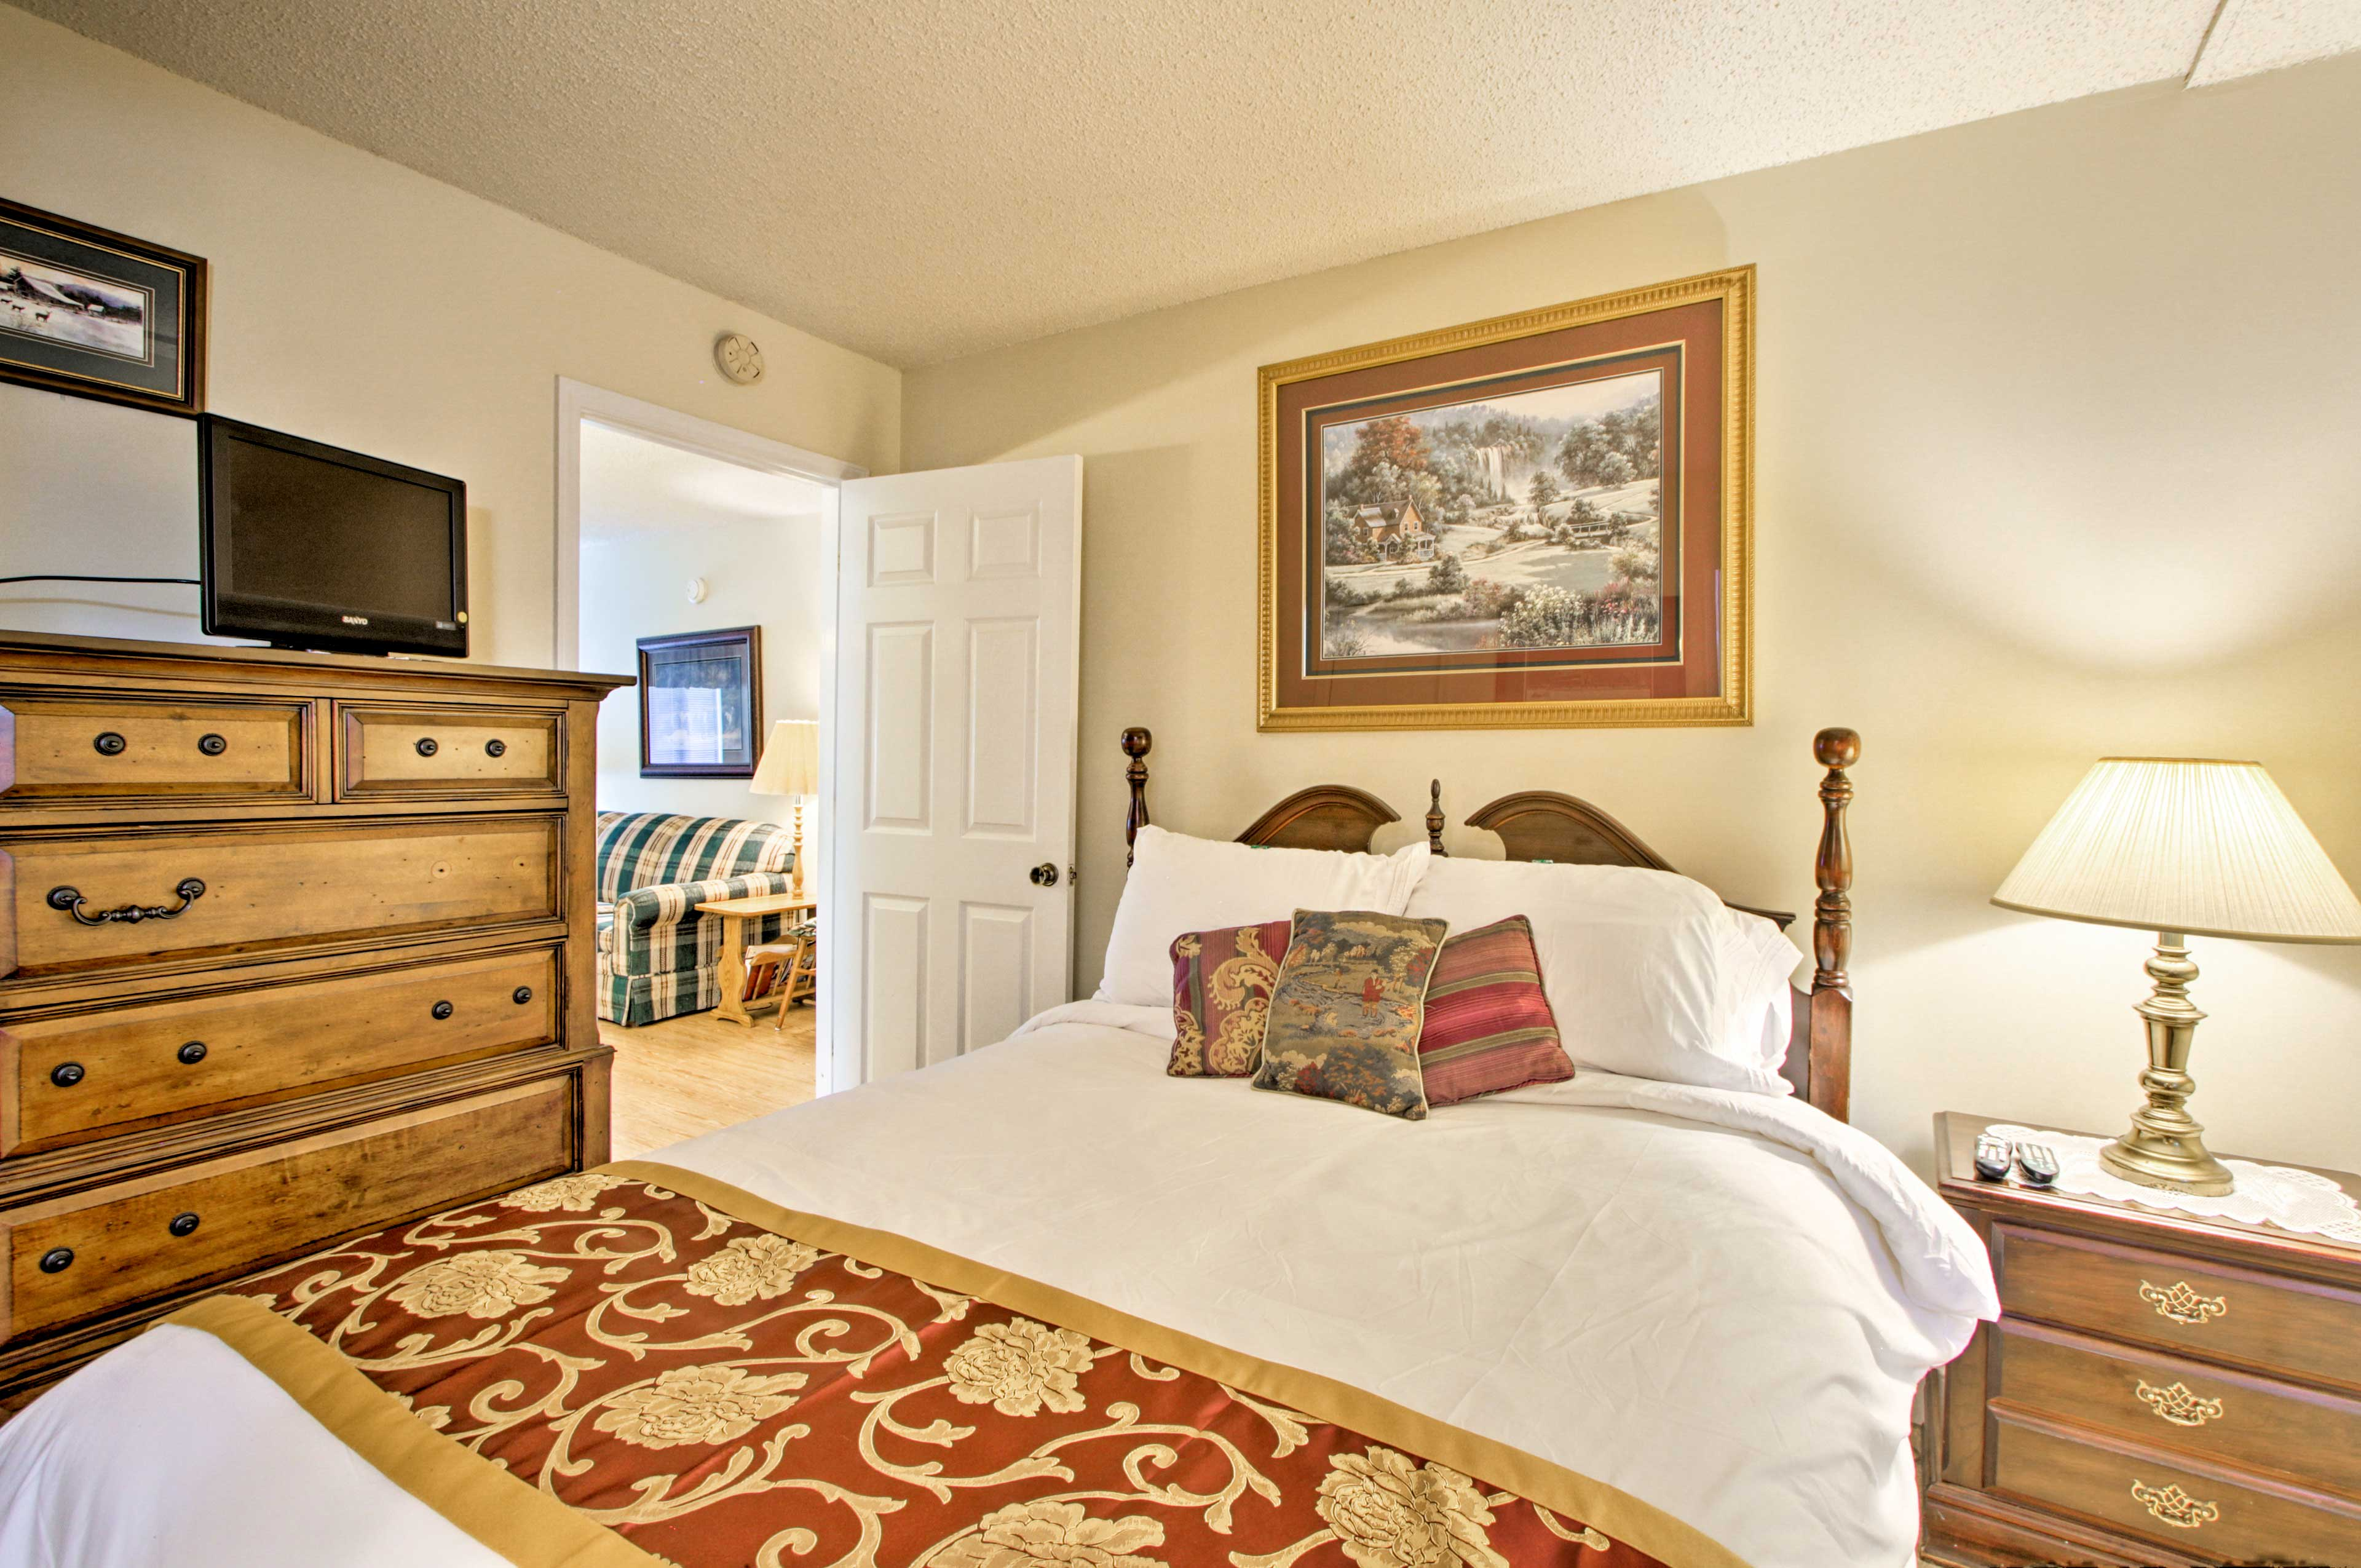 Rejuvenate for a new day of vacation in this queen-sized bed.